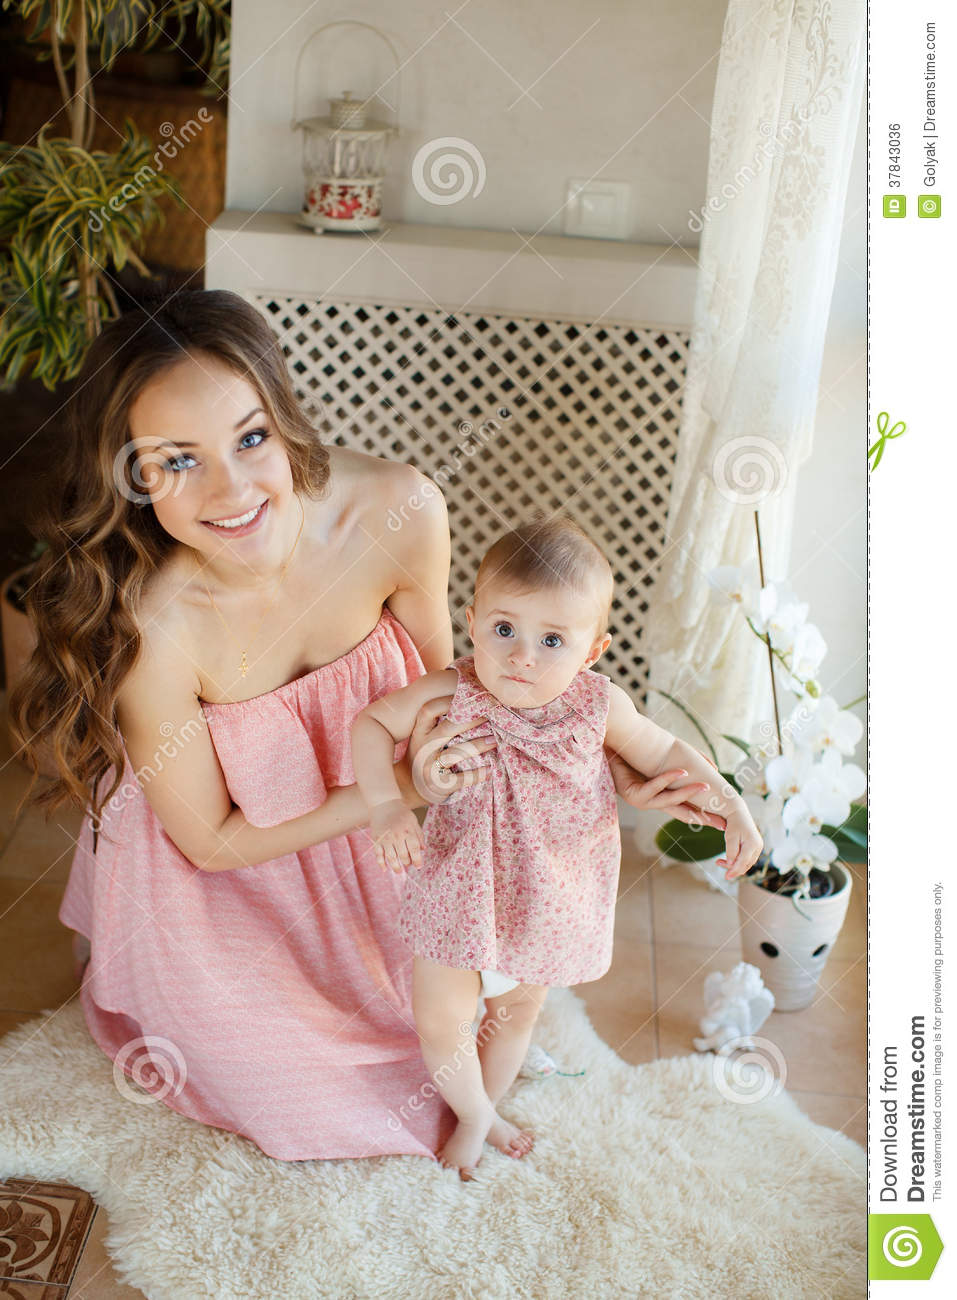 Portrait of happy young attractive mother playing with her baby girl near window in interior at haome. Pink dresses on mother and